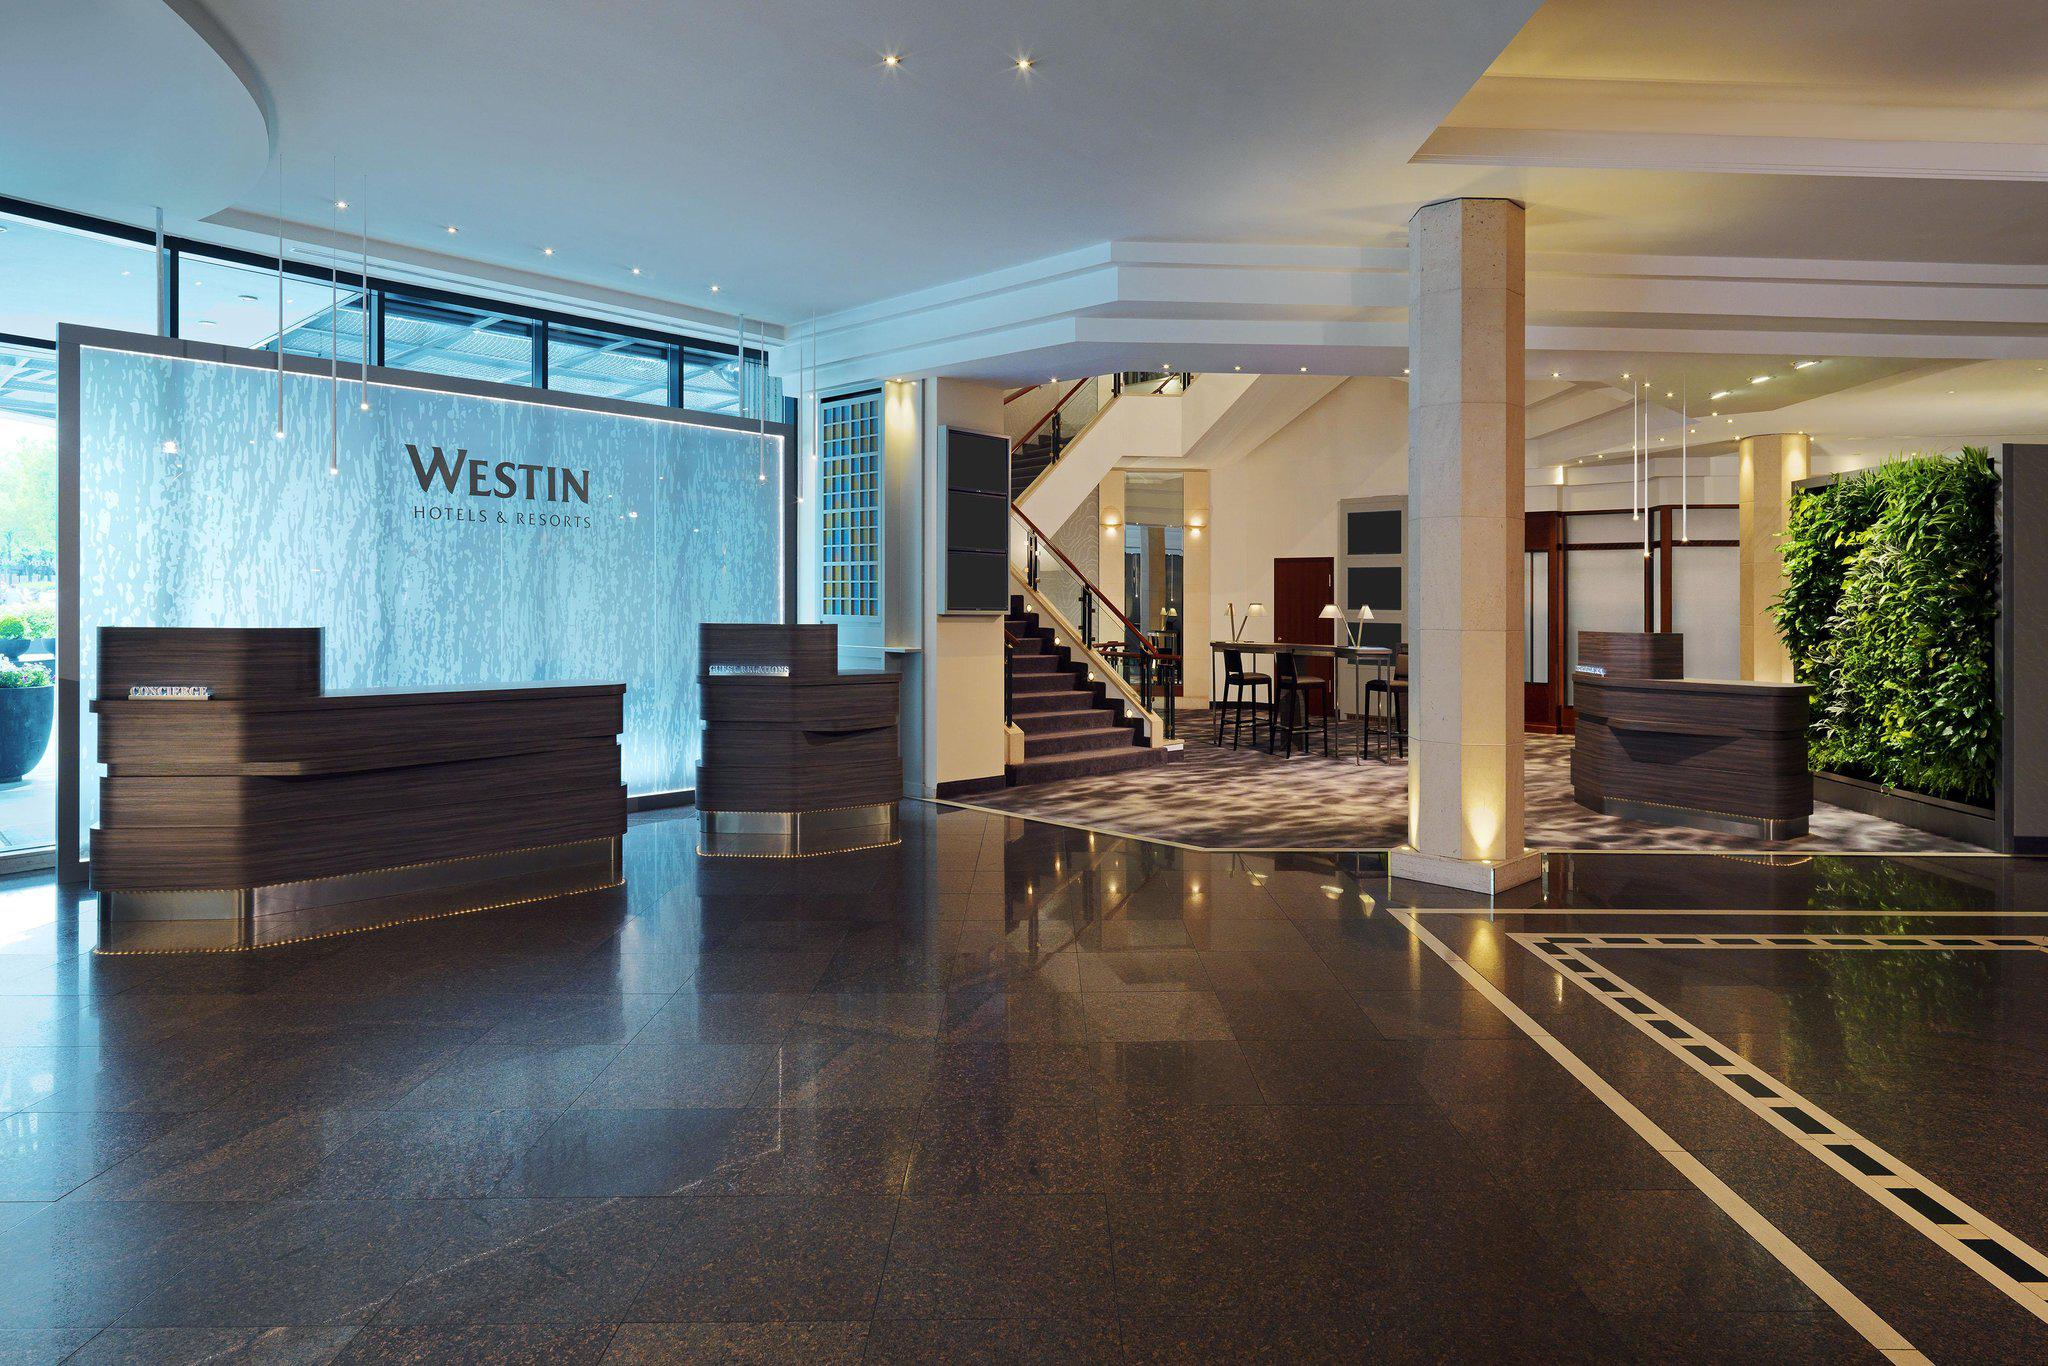 Bilder The Westin Grand Munich